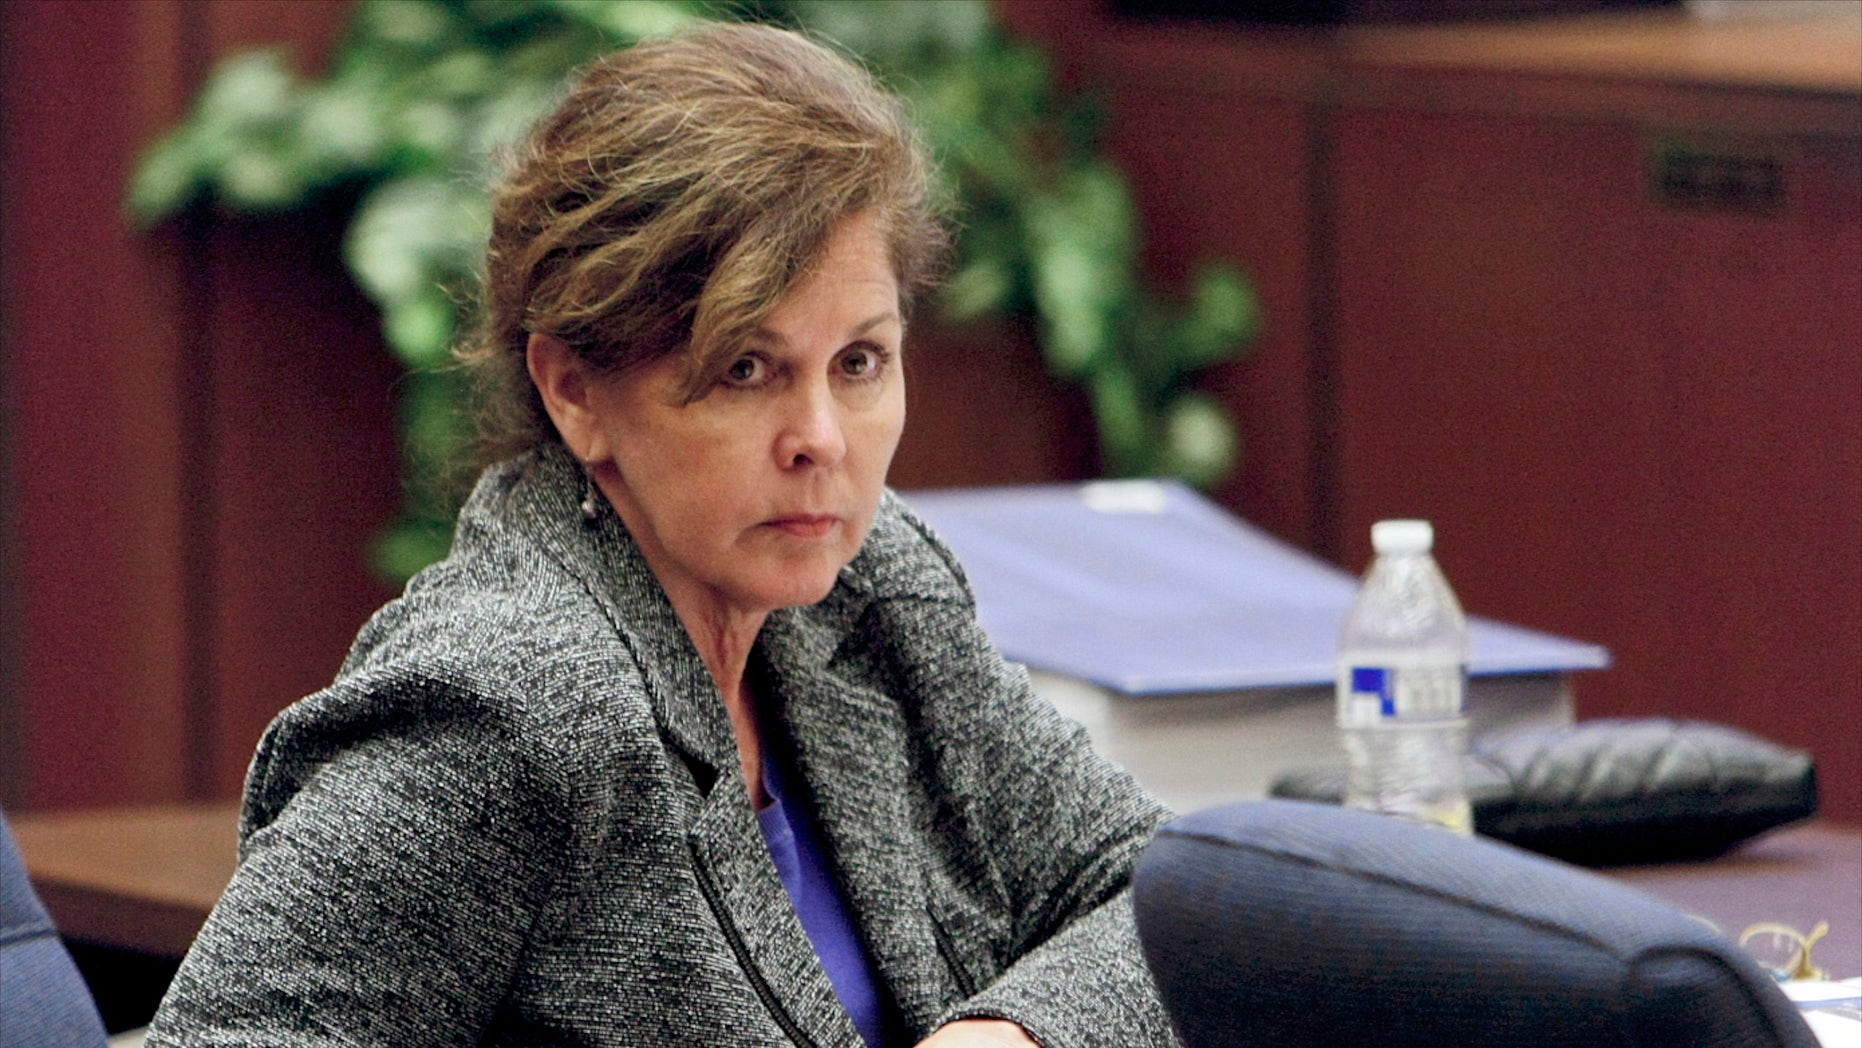 Oct. 23, 2013: Former assistant city manager of Bell, Calif., Angela Spaccia appears in Los Angeles Superior Court.